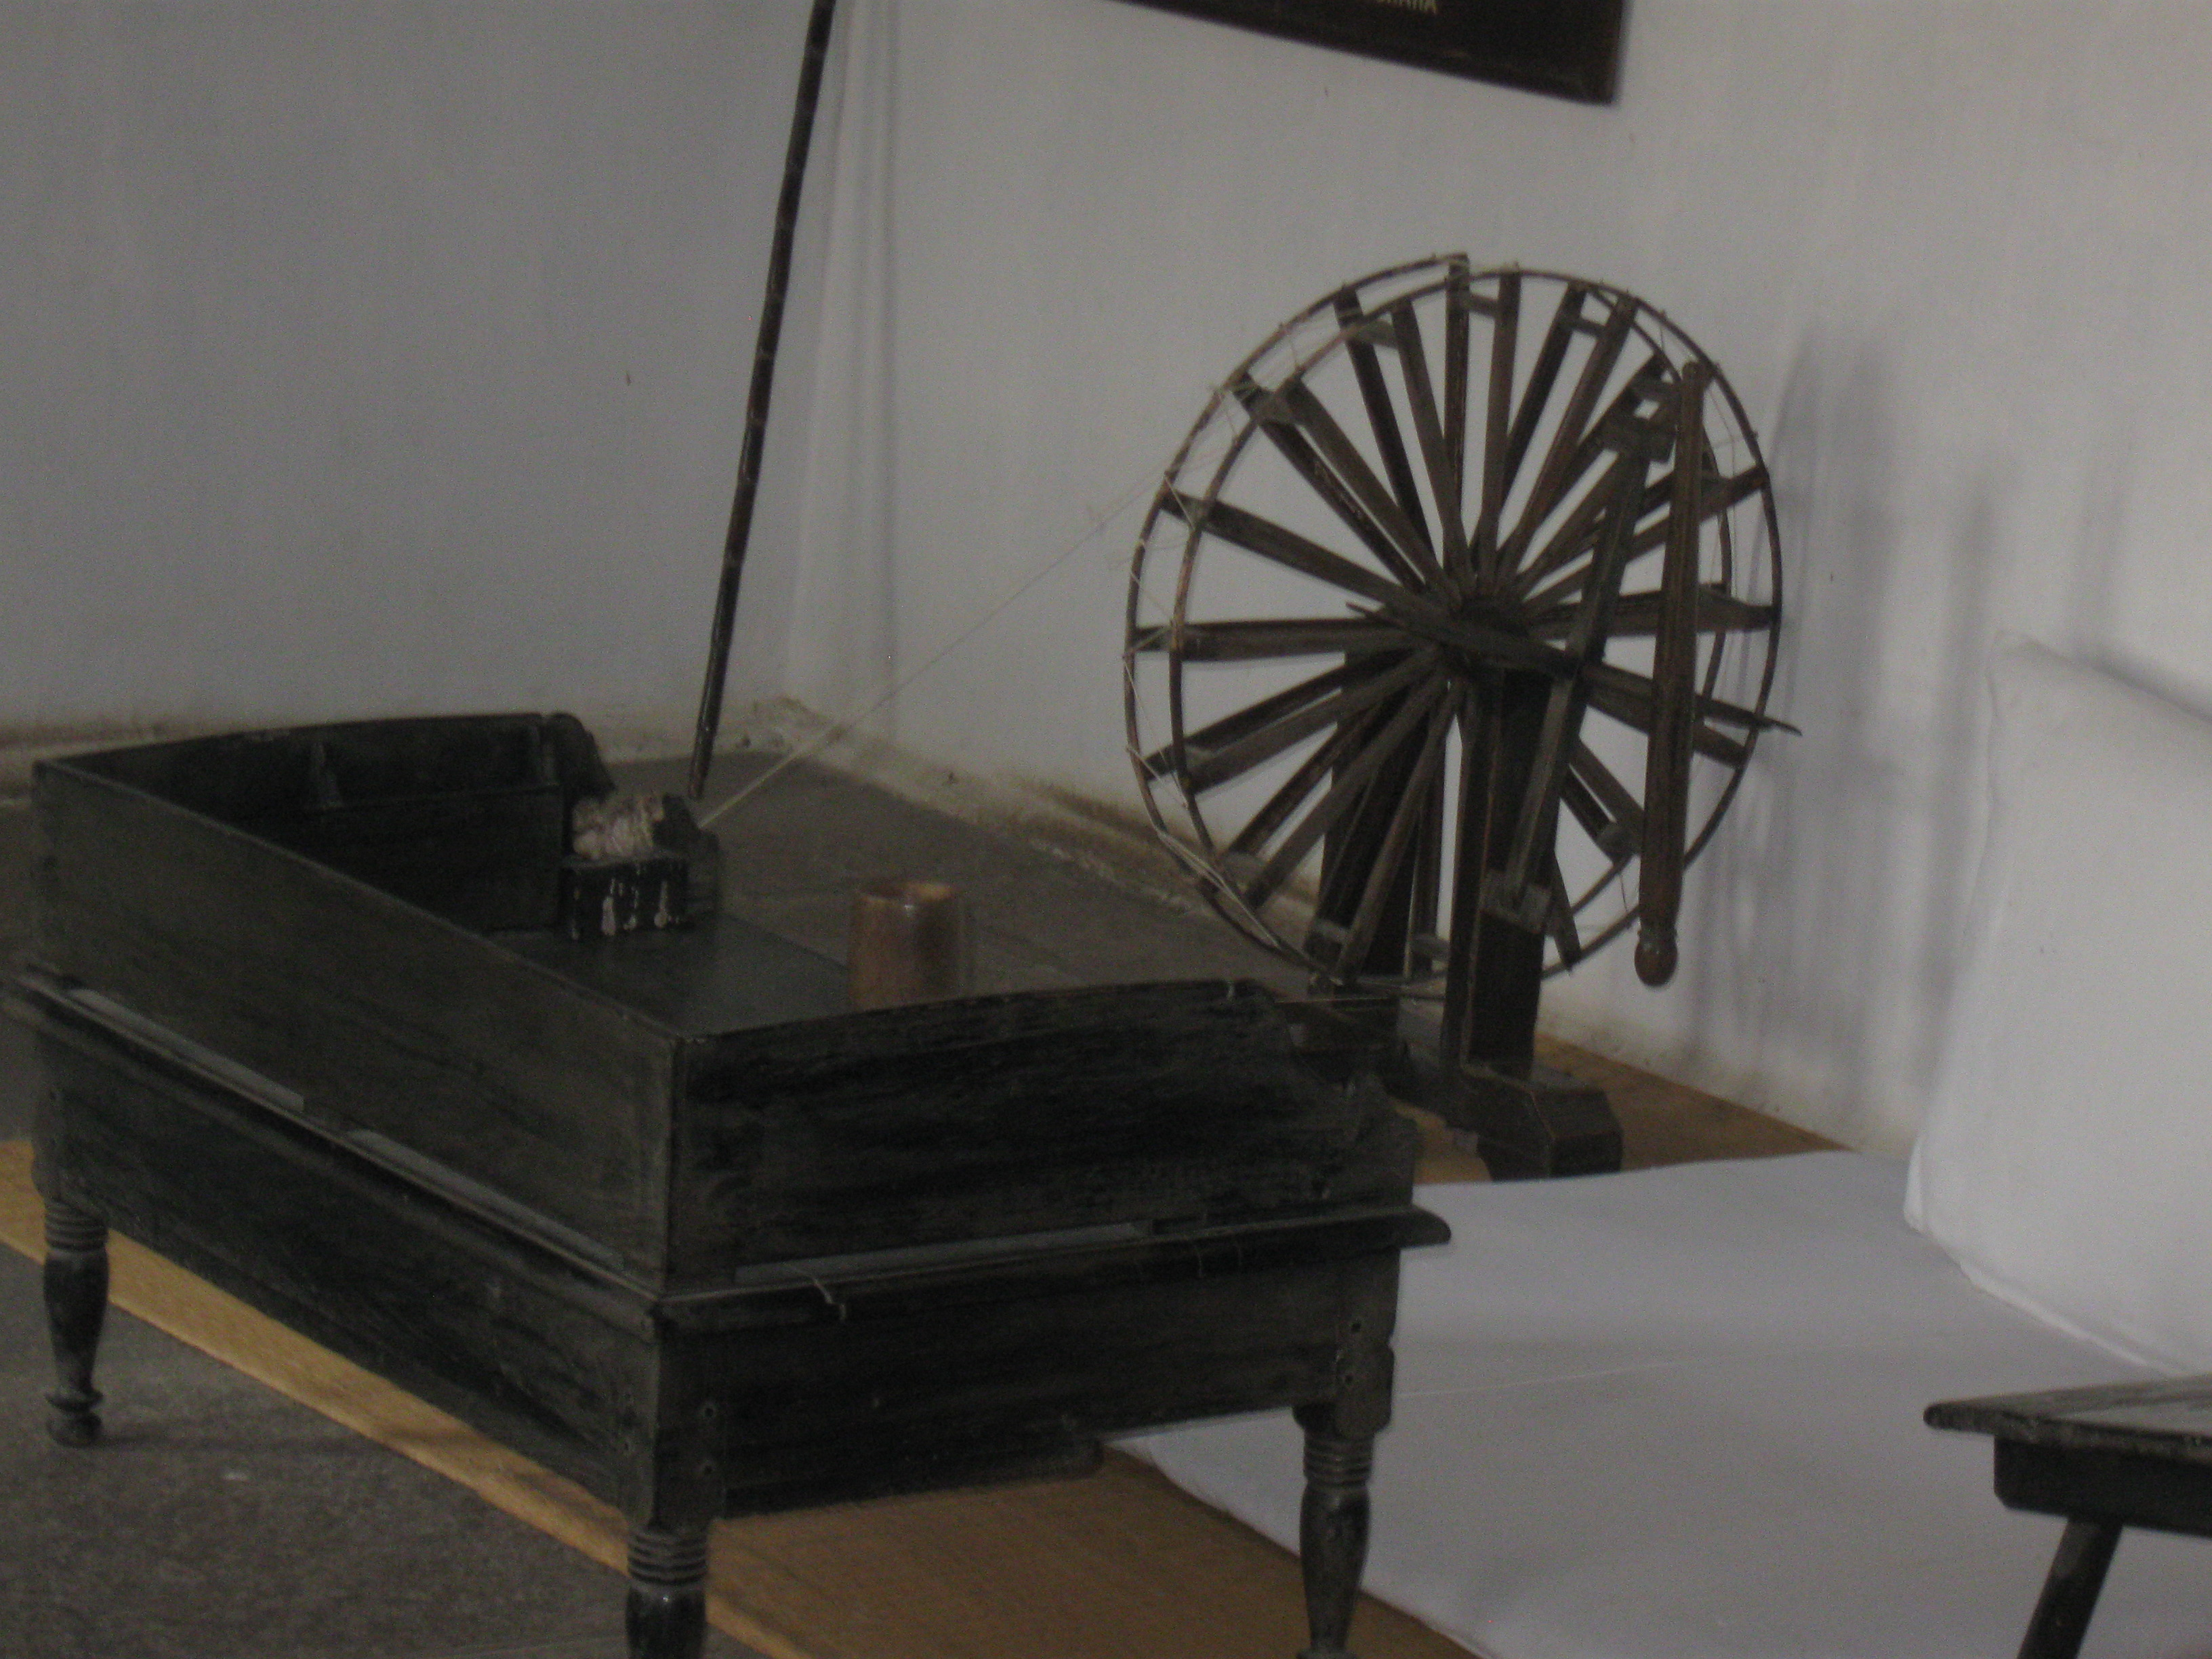 Gandhiji's Charkha and table at Sabarmati Ashram, Ahmedabad